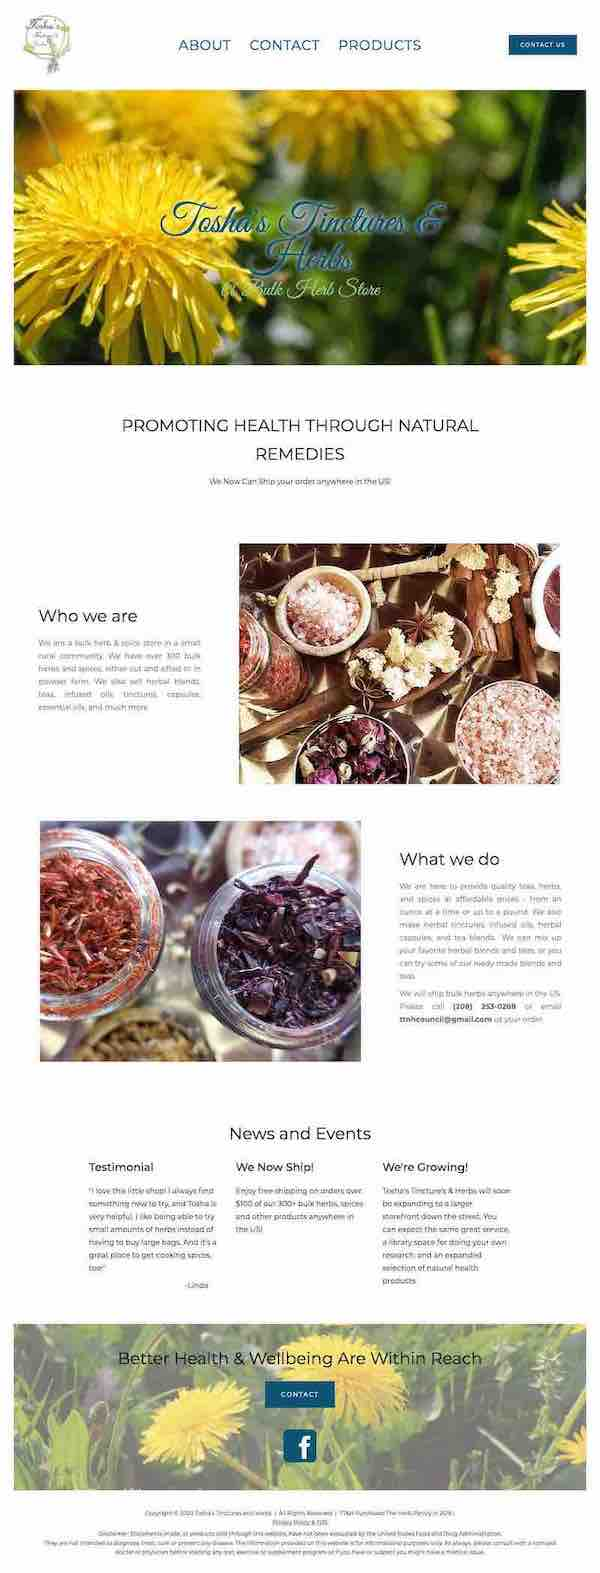 Full page screenshot of Tosha's Tinctures & Herbs website.